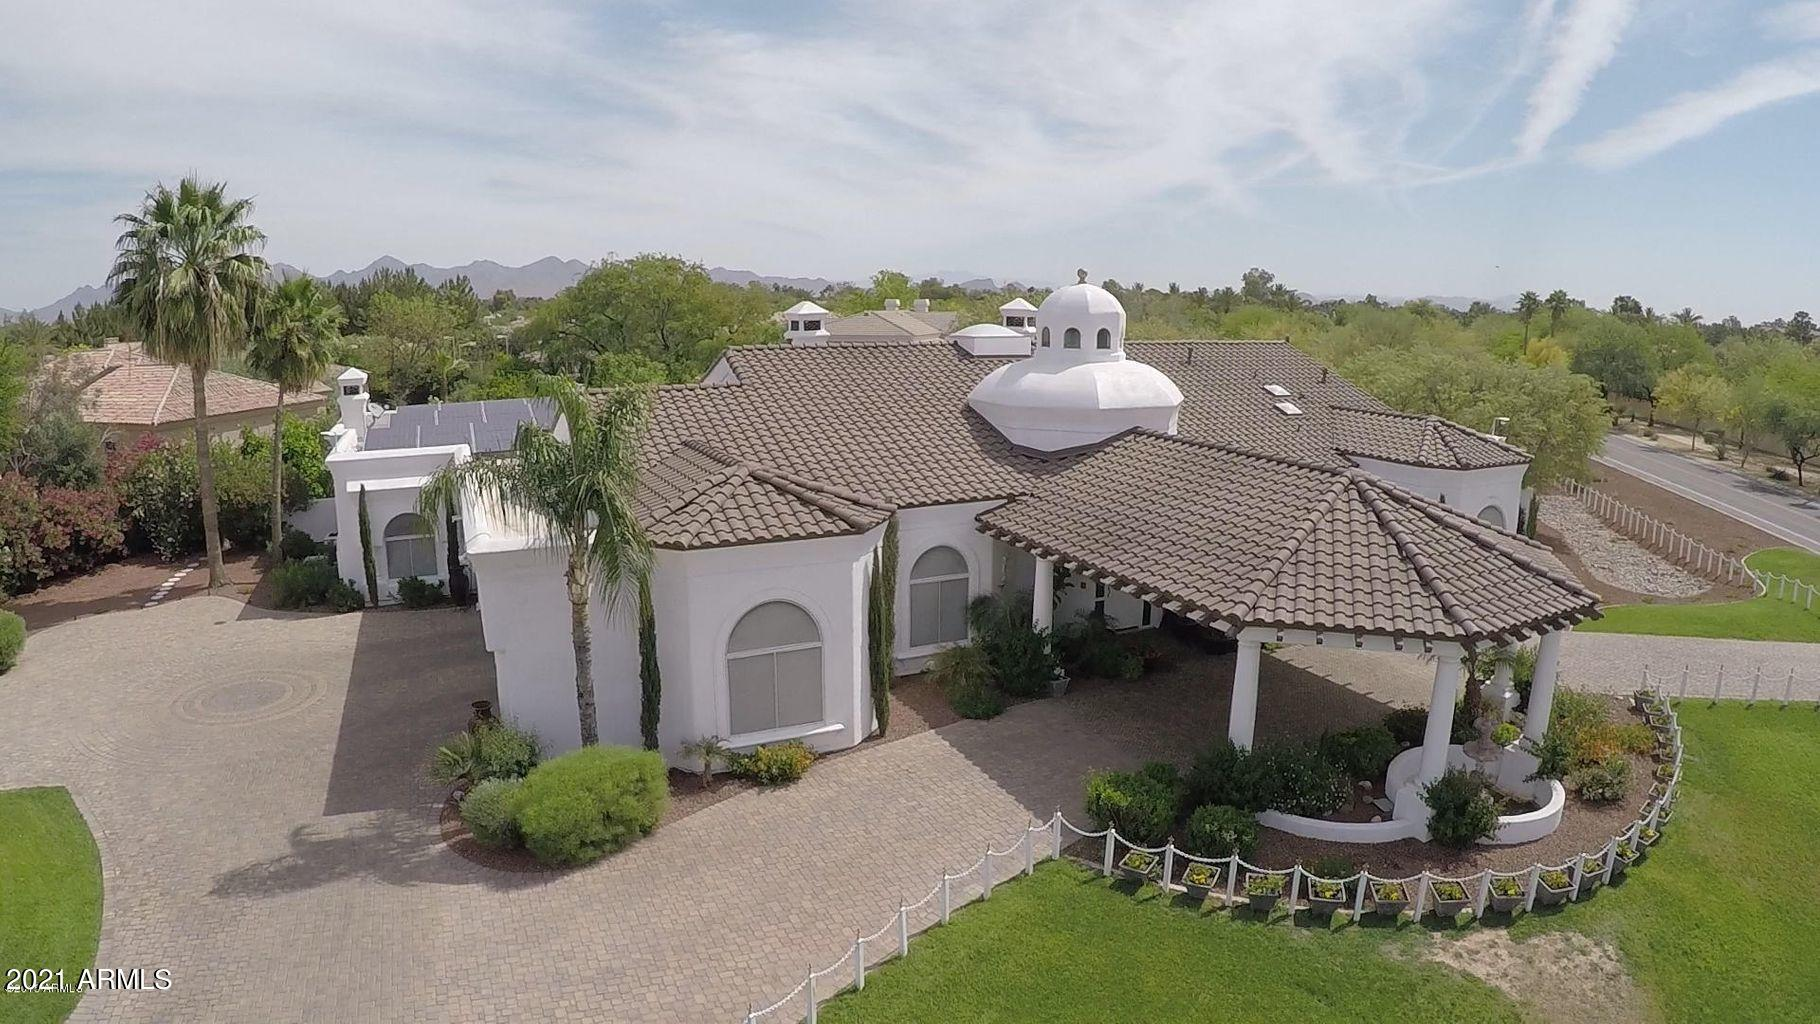 7505 N 70TH Street, Paradise Valley, AZ 85253, 6 Bedrooms Bedrooms, ,Residential Lease,For Rent,7505 N 70TH Street,6238179